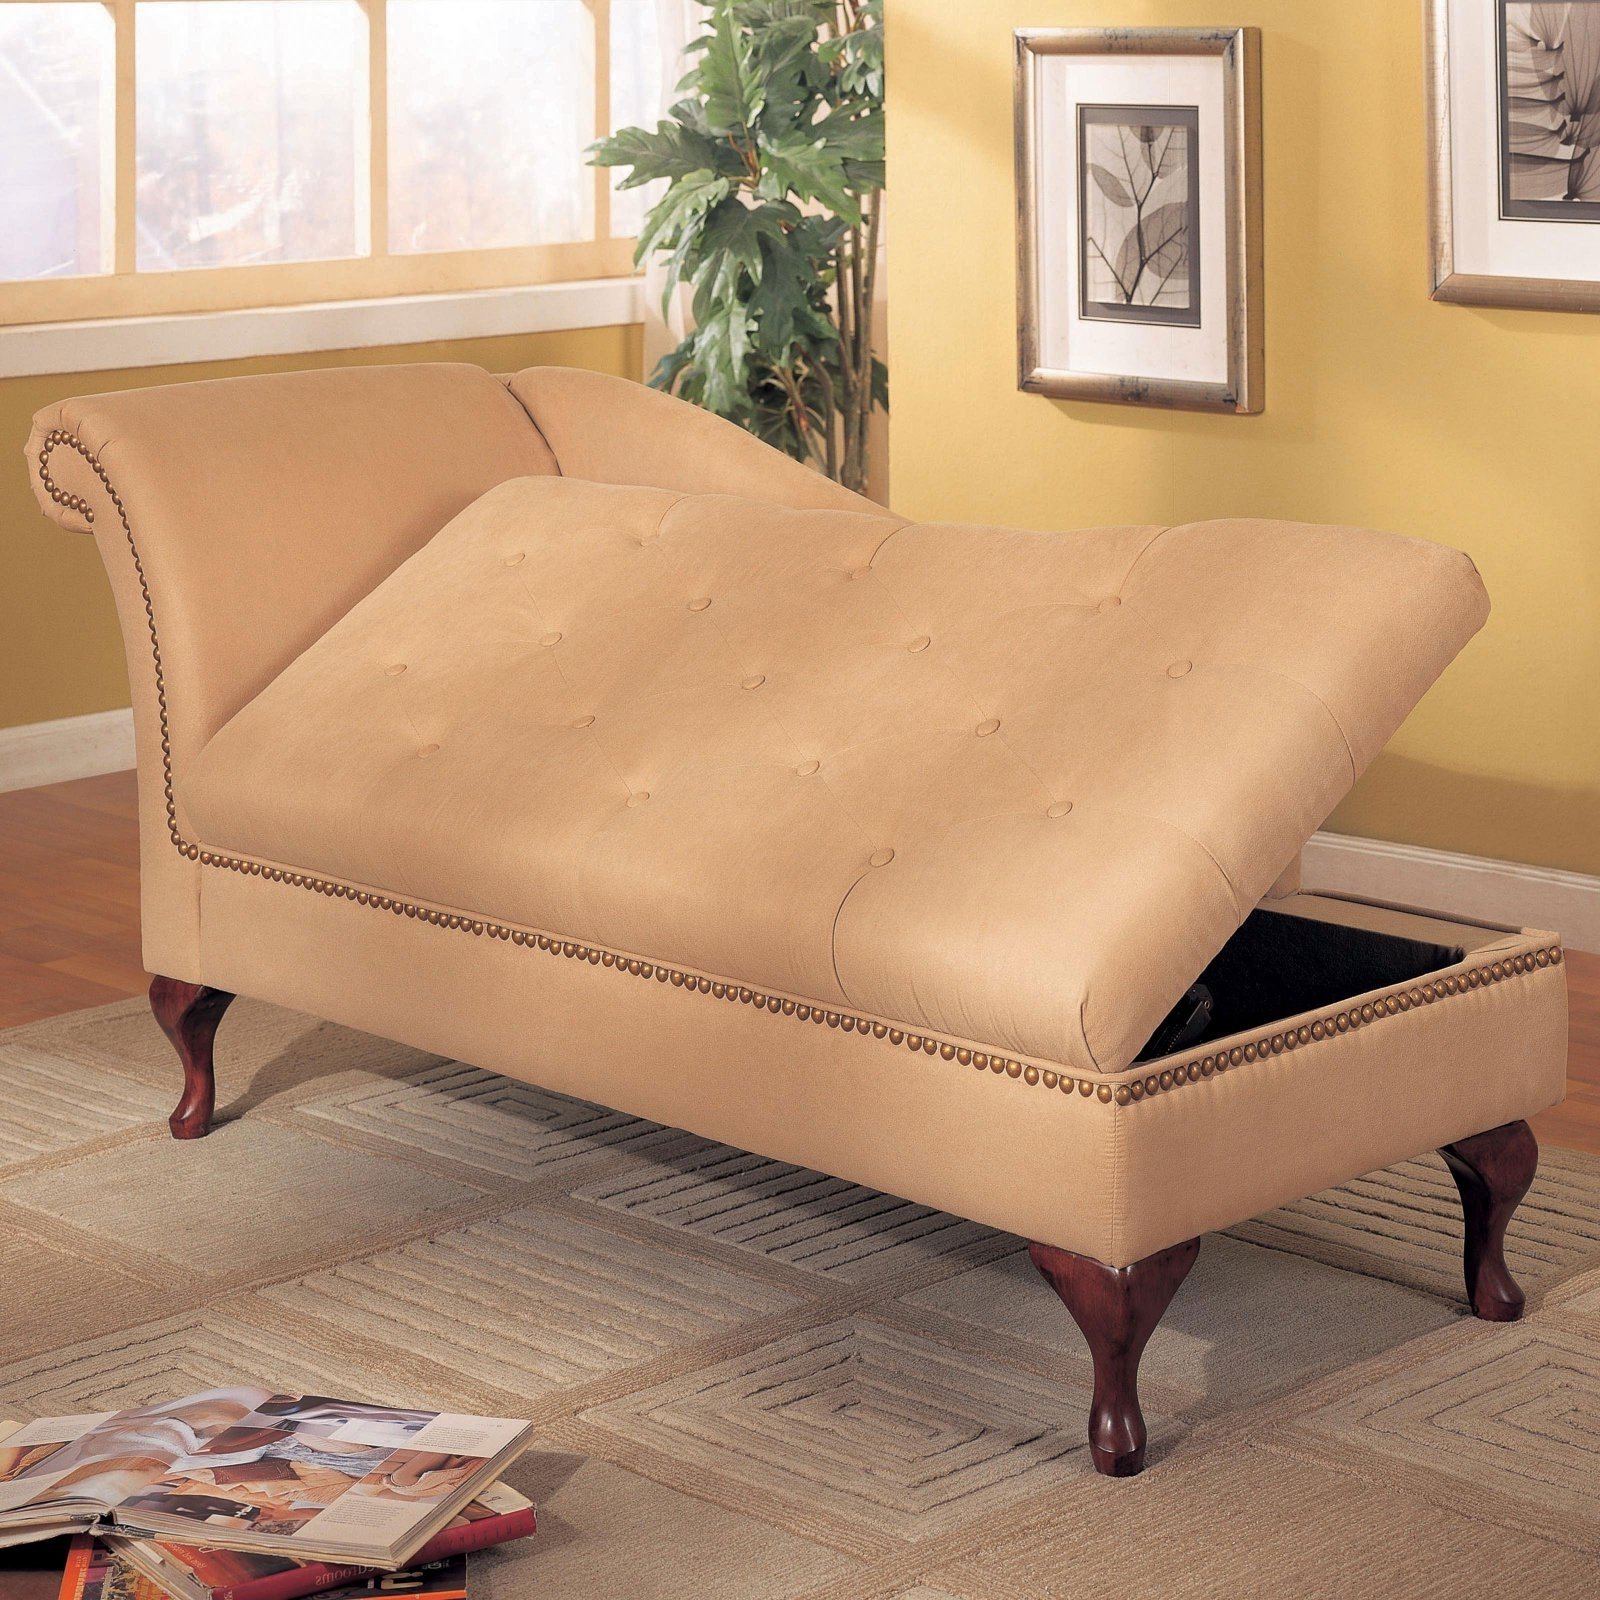 Chaise Lounge Chairs For Small Spaces Regarding Famous Small Chaise Lounge Chair For Room Awesome Bedroom Chairs Ideas (View 9 of 15)